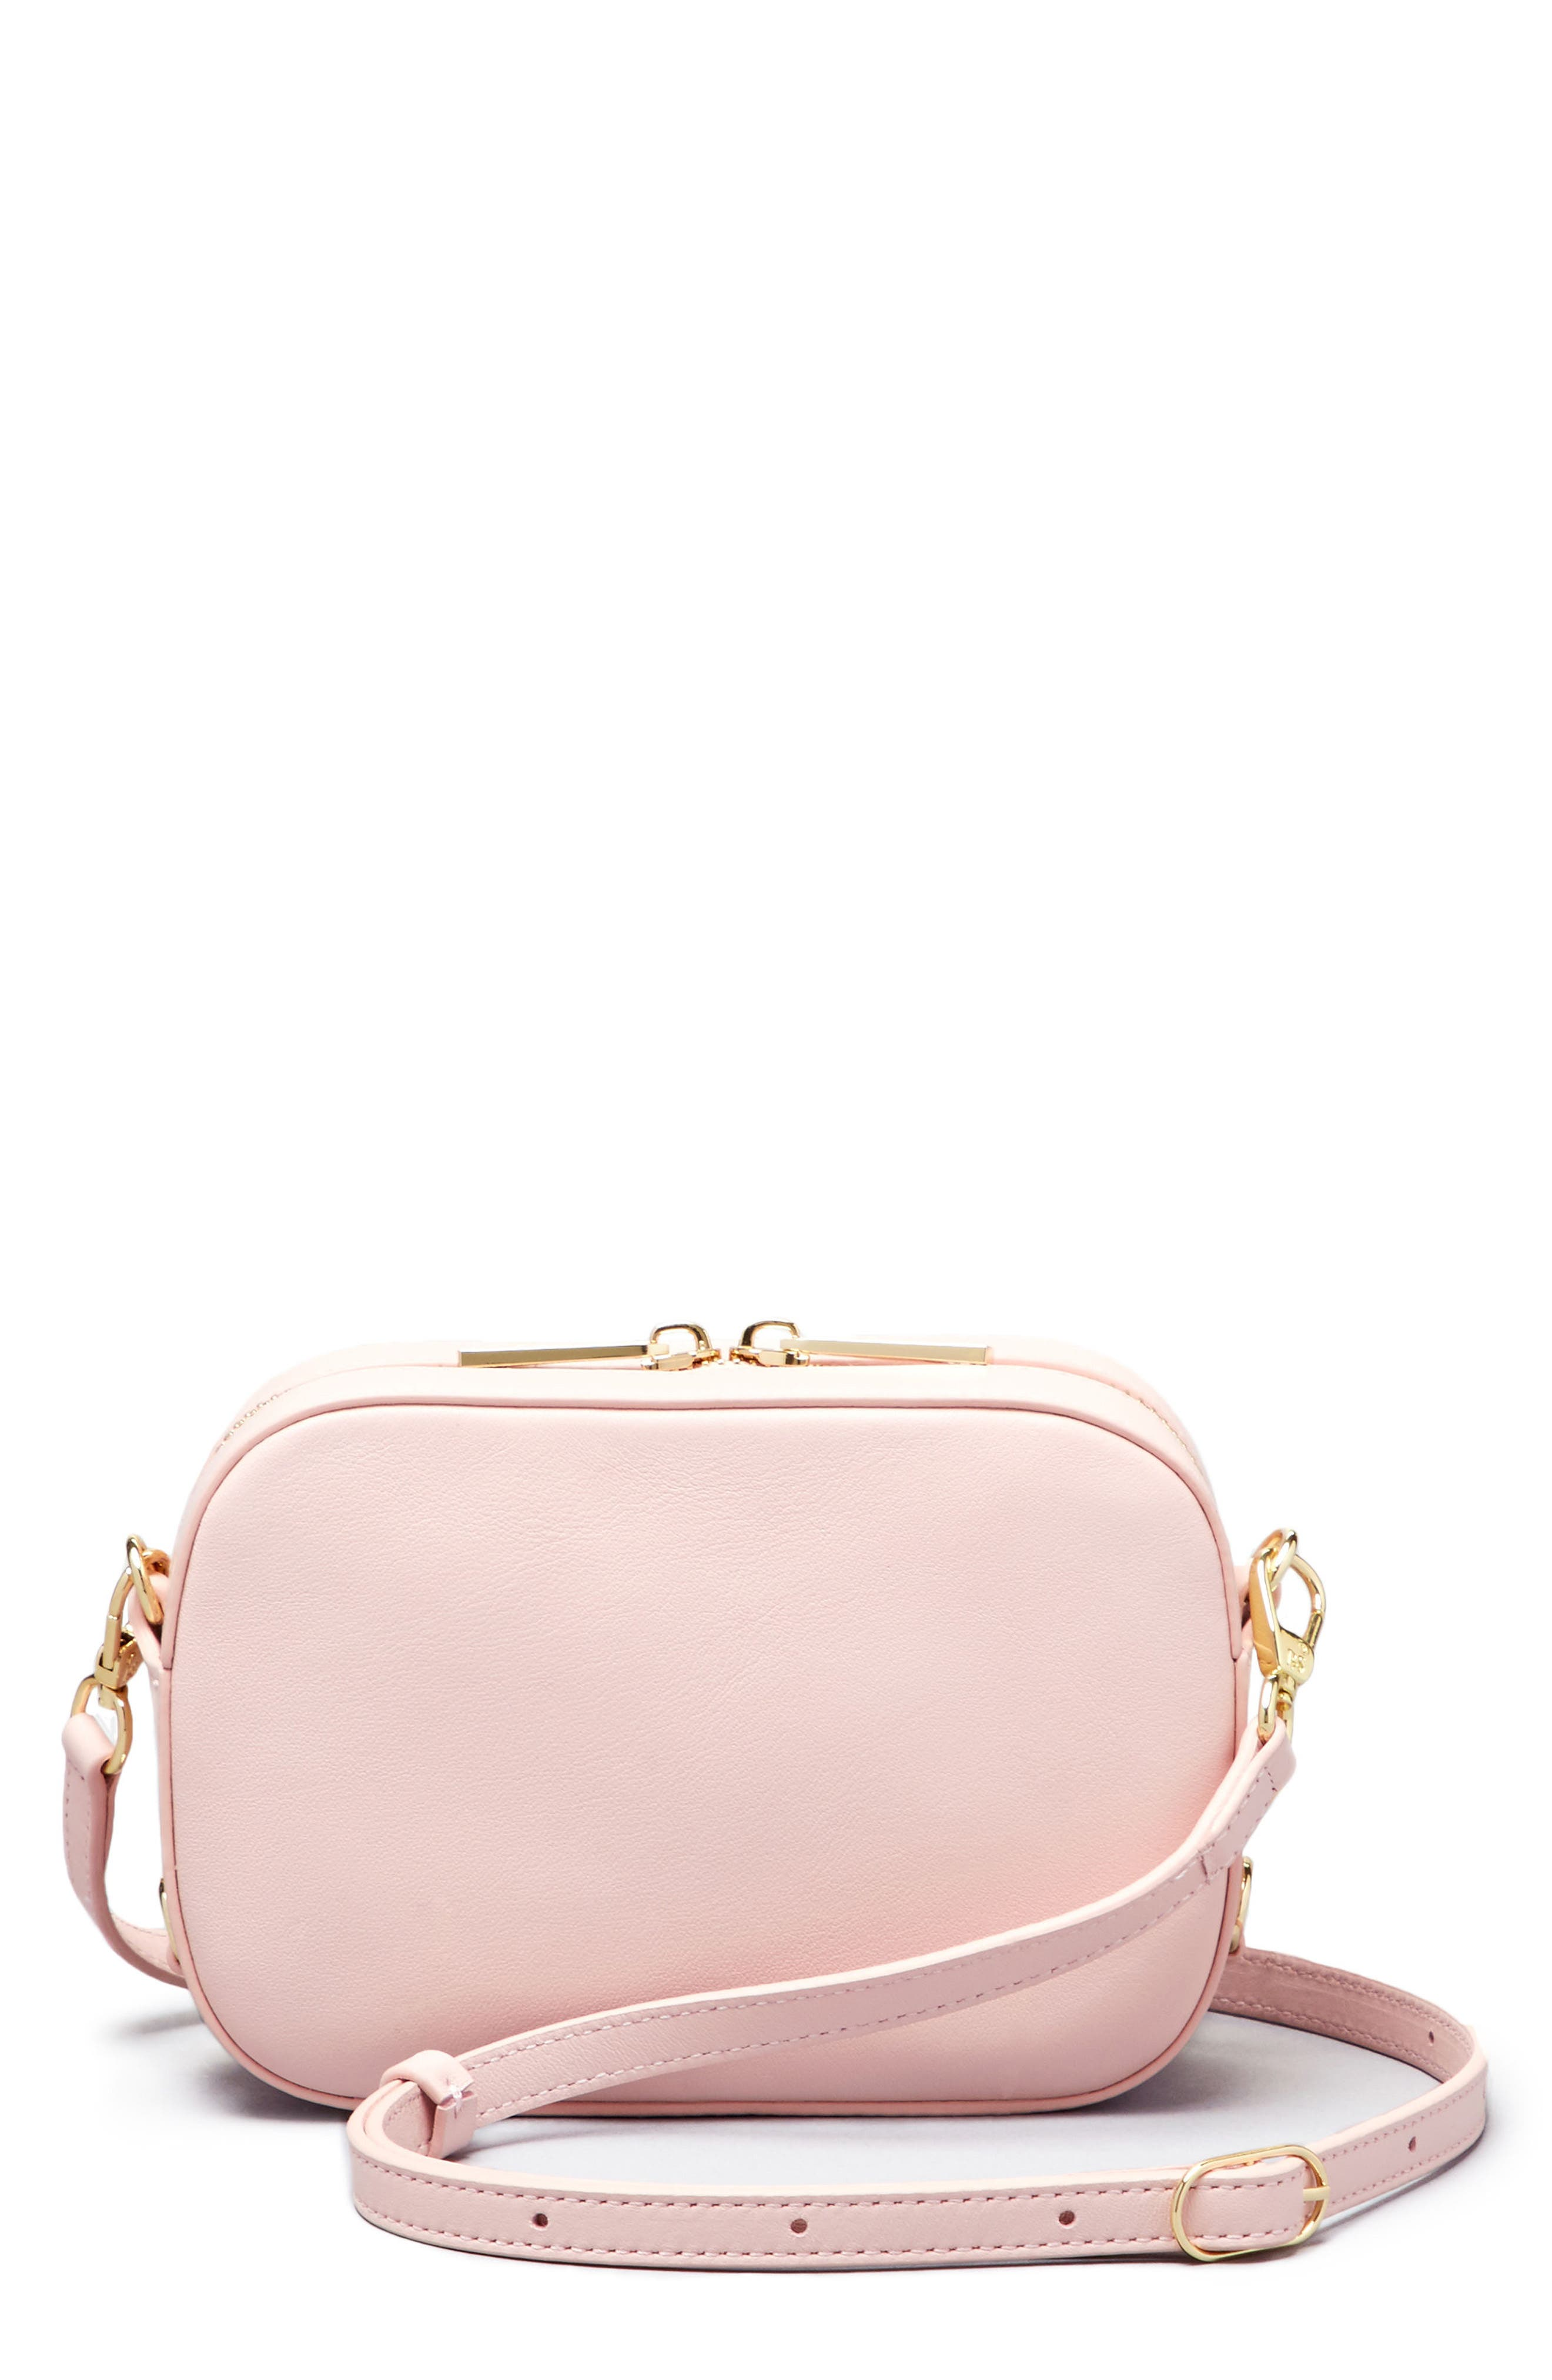 Personalized Leather Camera Bag,                         Main,                         color, Cotton Candy/ White